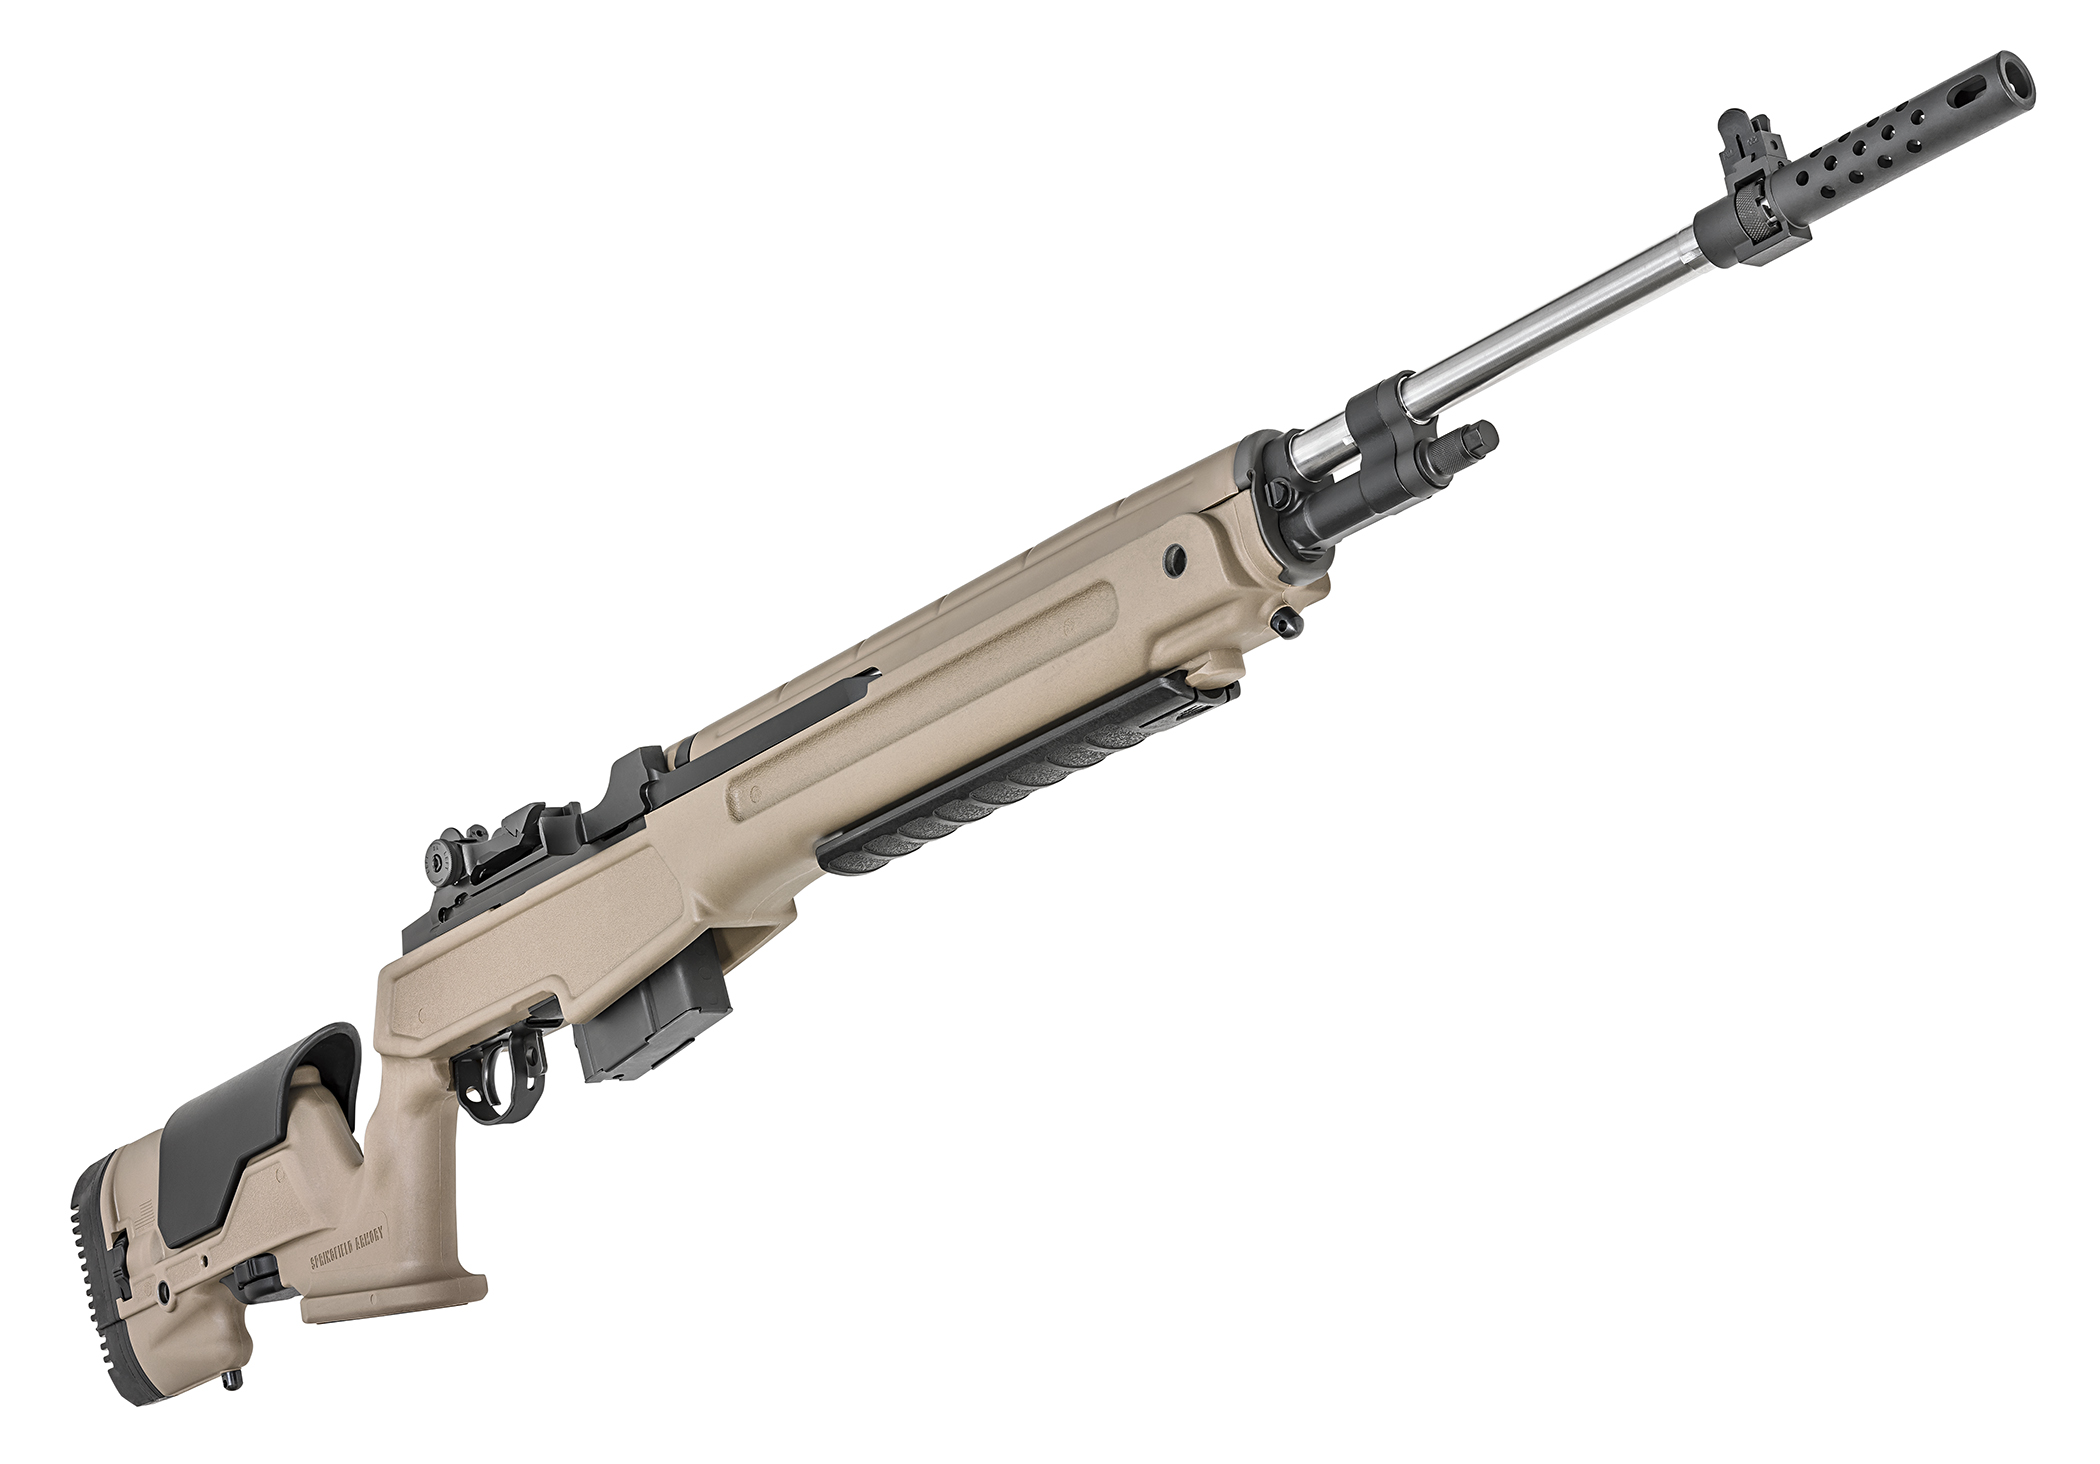 NEW Springfield Armory M1A in 6.5 Creedmoor